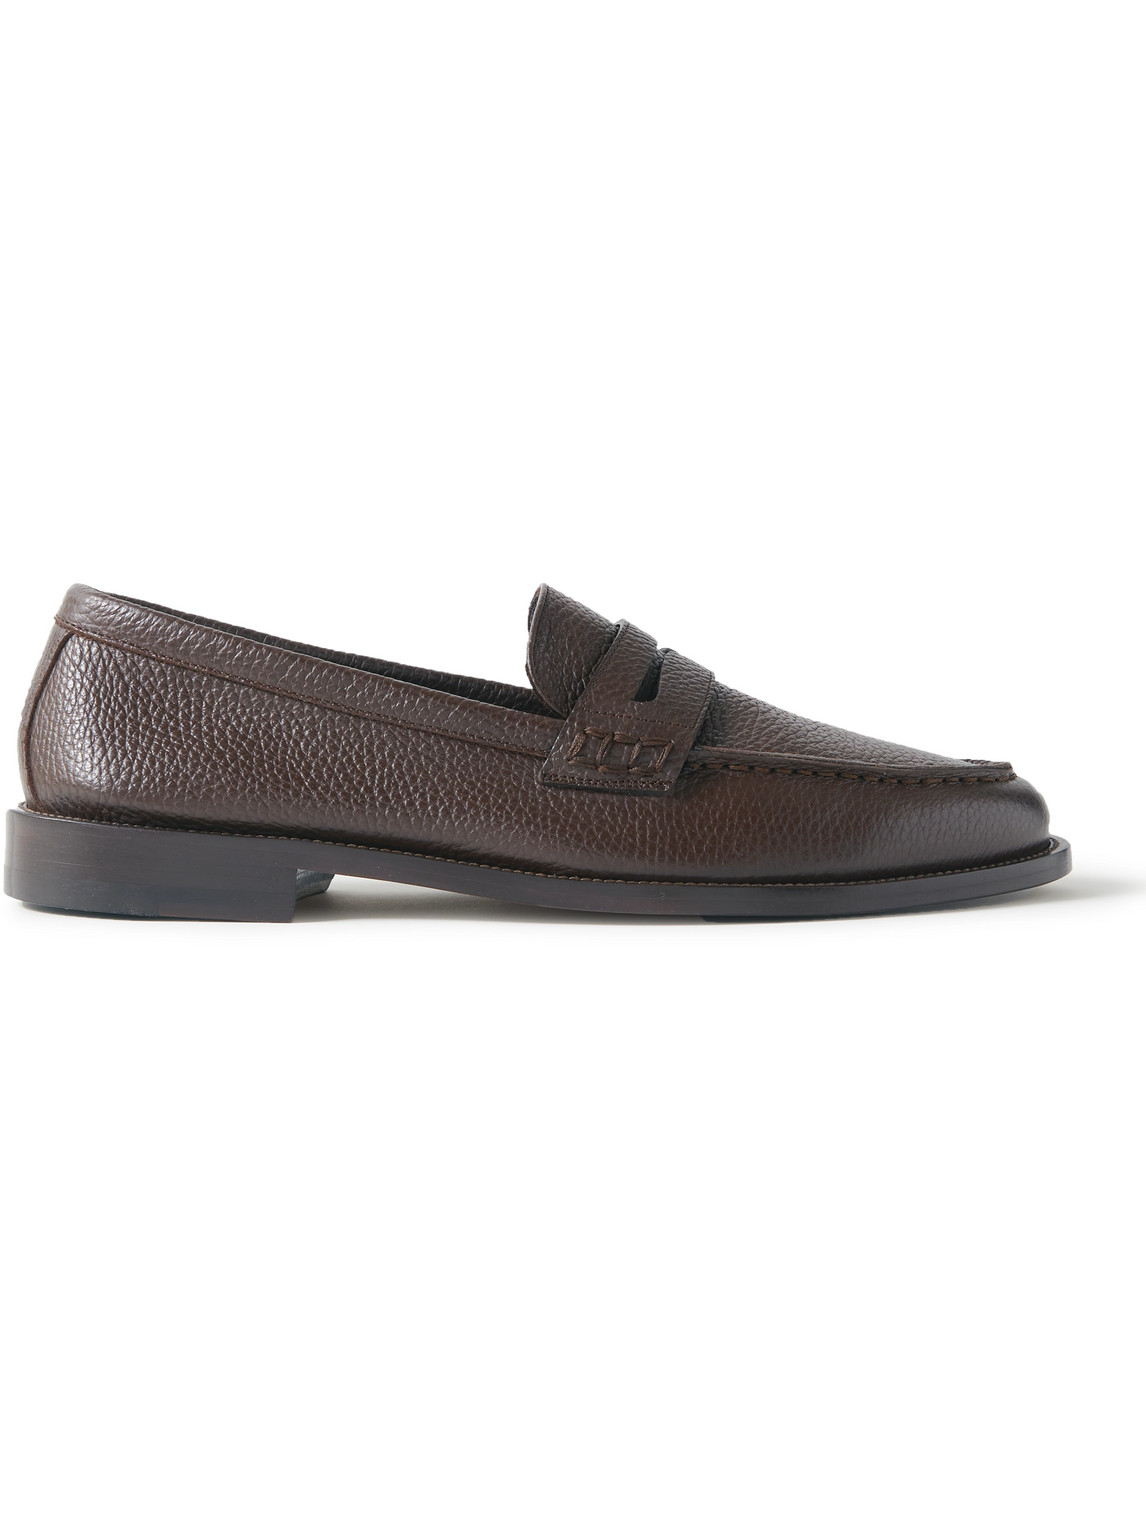 Manolo Blahnik Perry Full-grain Leather Penny Loafers In Brown